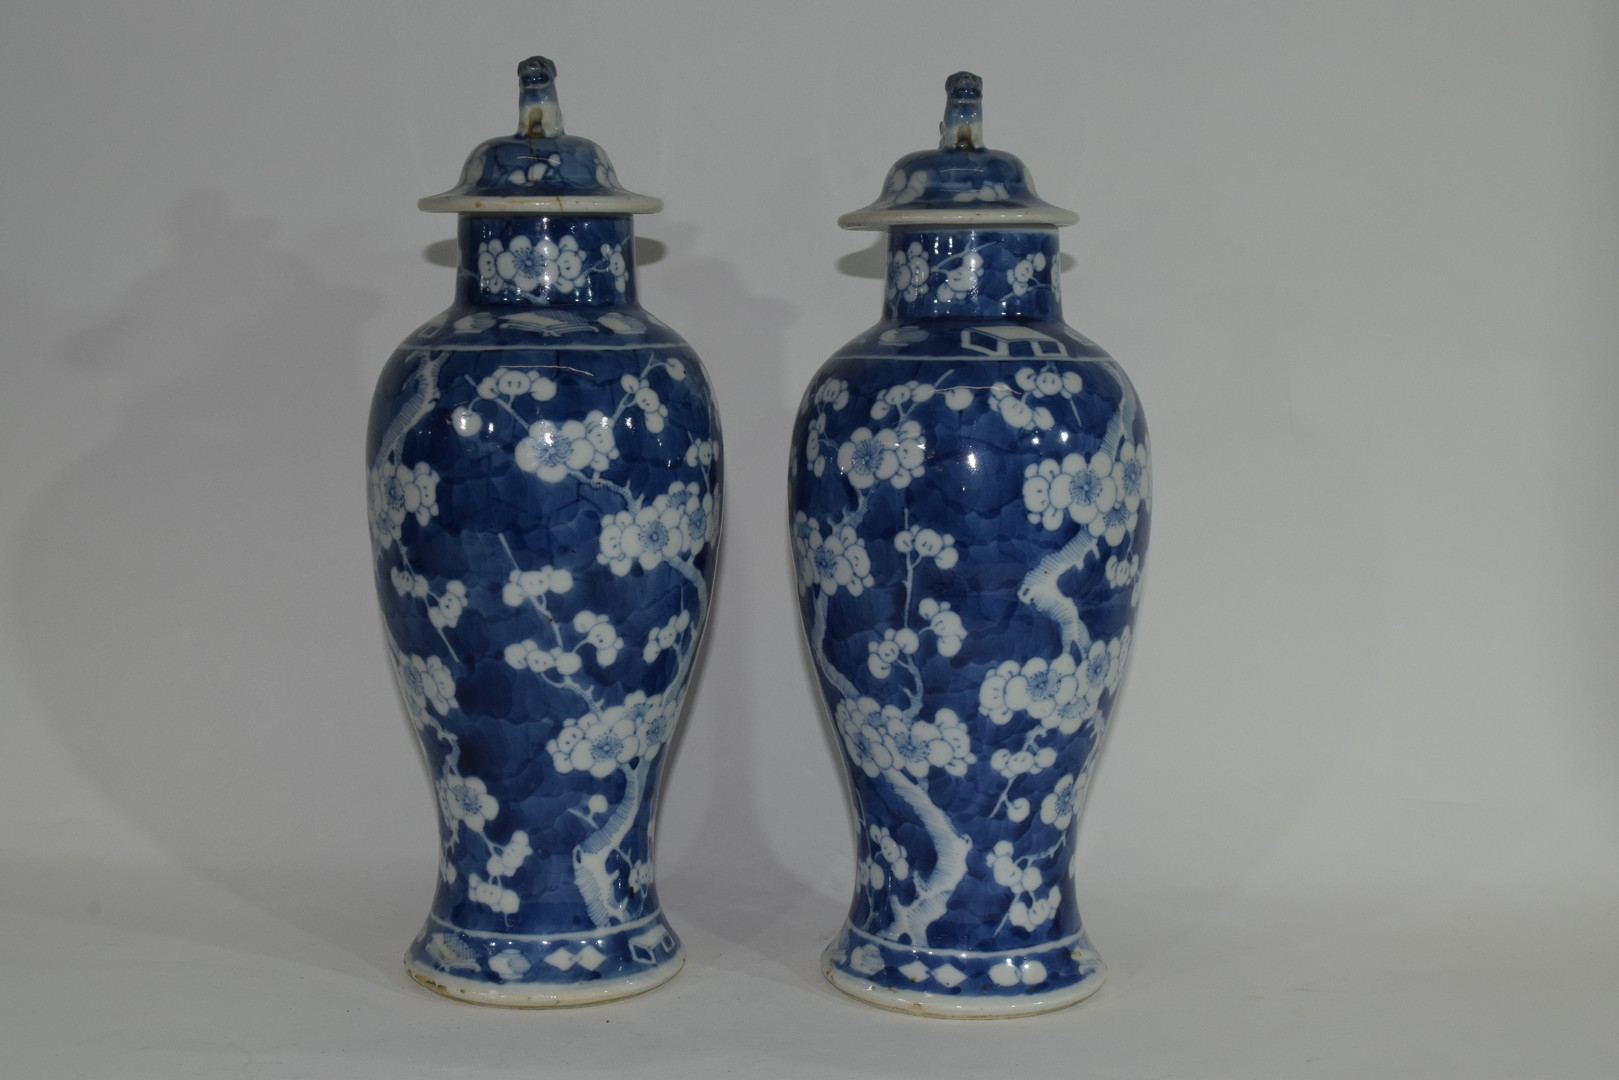 Pair of 19th century Chinese porcelain vases and covers - Image 5 of 9